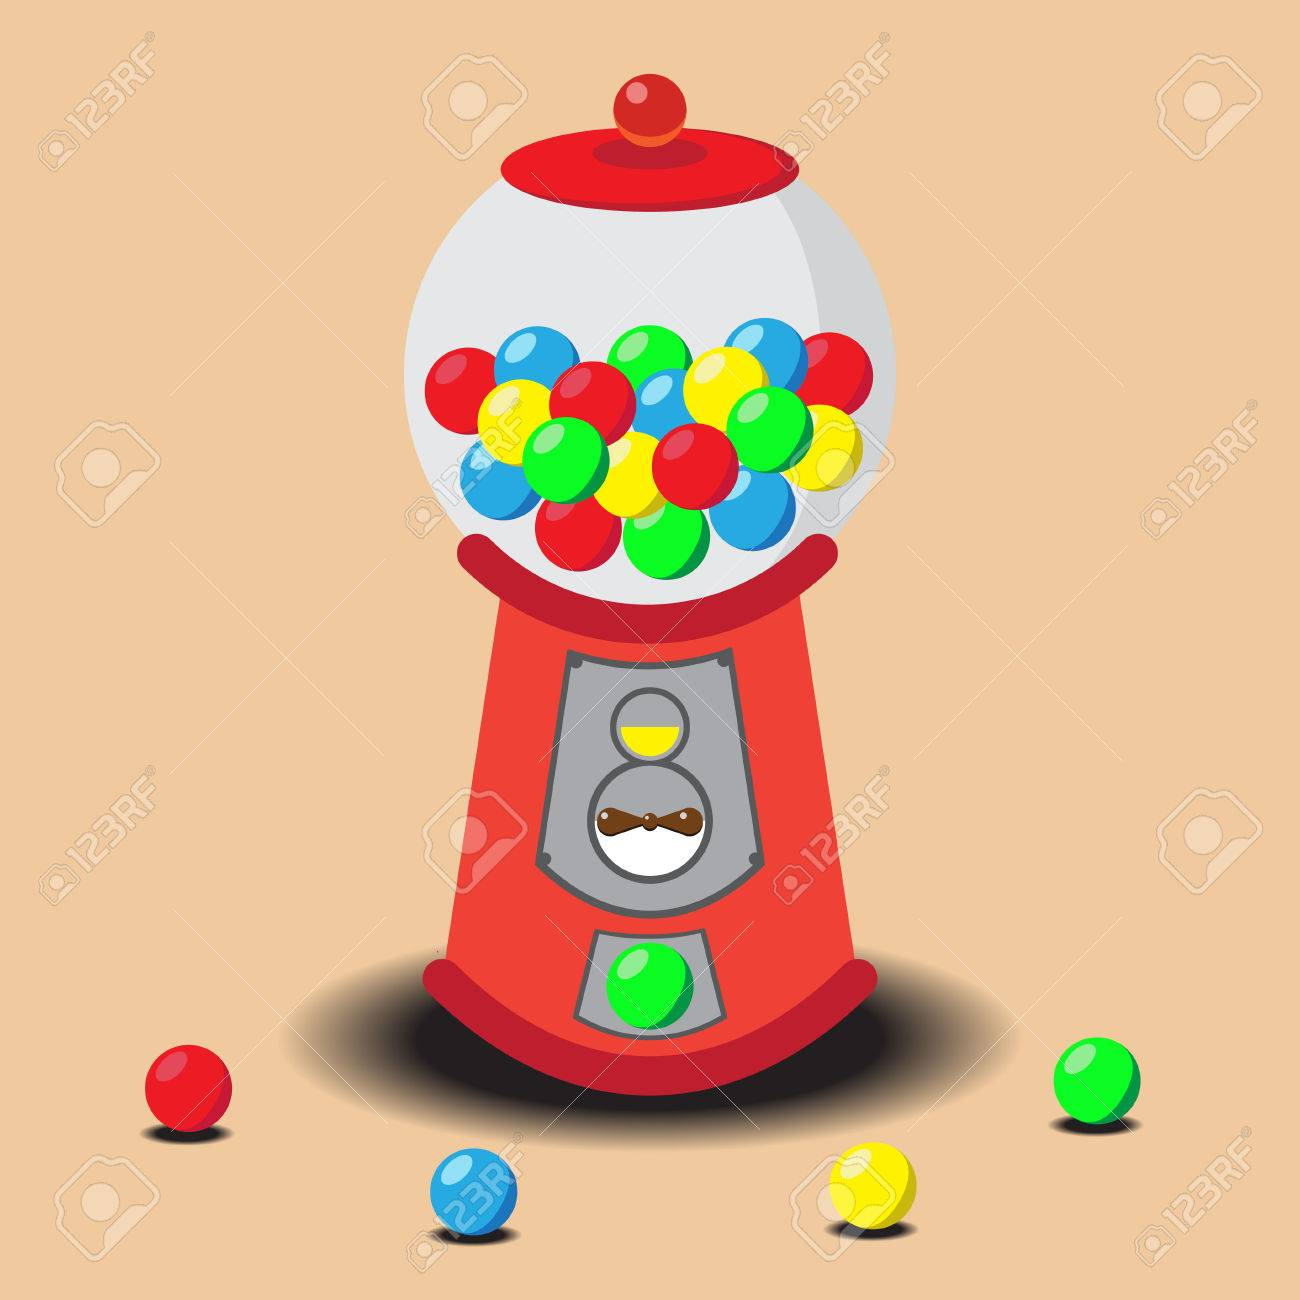 gumball machine vector royalty free cliparts vectors and stock